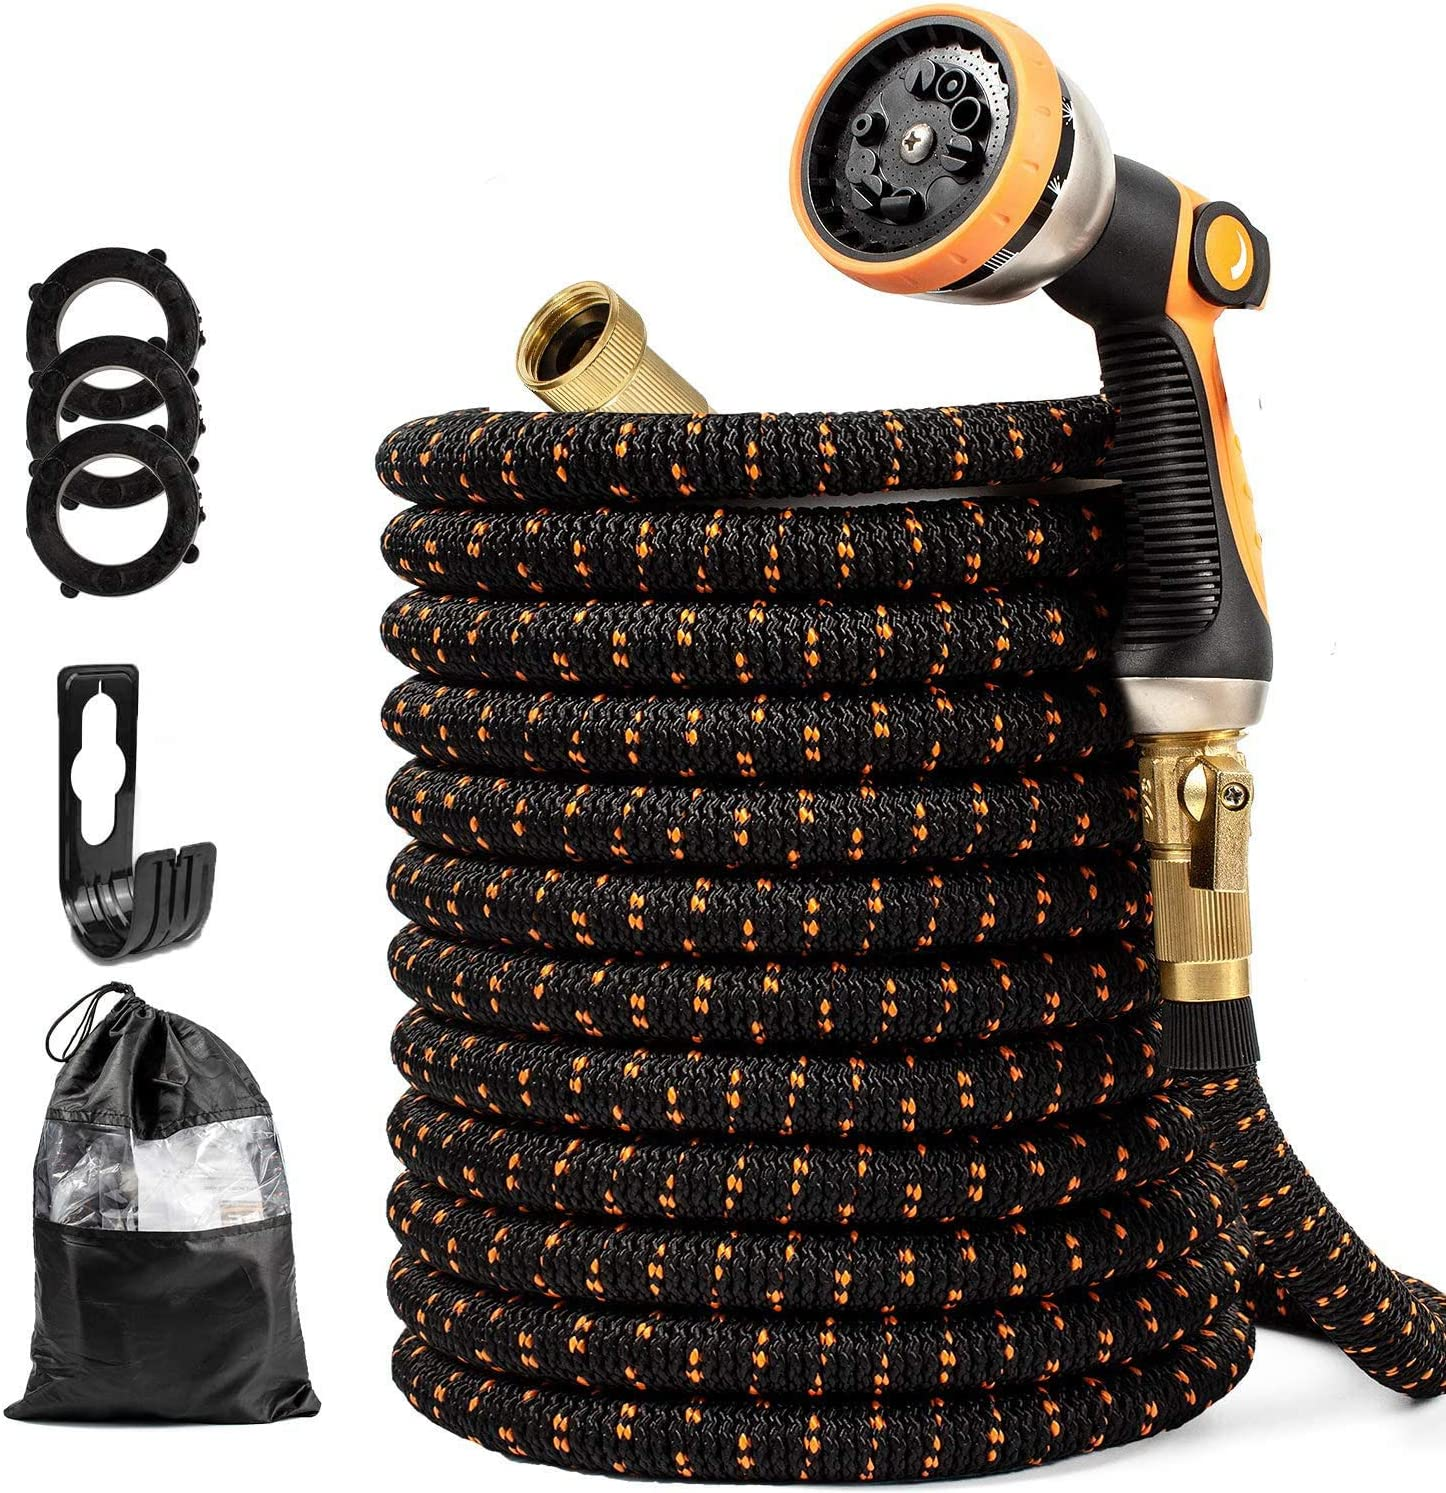 Upgraded Expandable Garden Hose 25 FT with 10 Function Nozzle, Strongest Four Layer Latex Core, All Solid No-Rust Brass Connectors - Easy to Use and Store, Lightweight Flexible Kink Free Water Hose